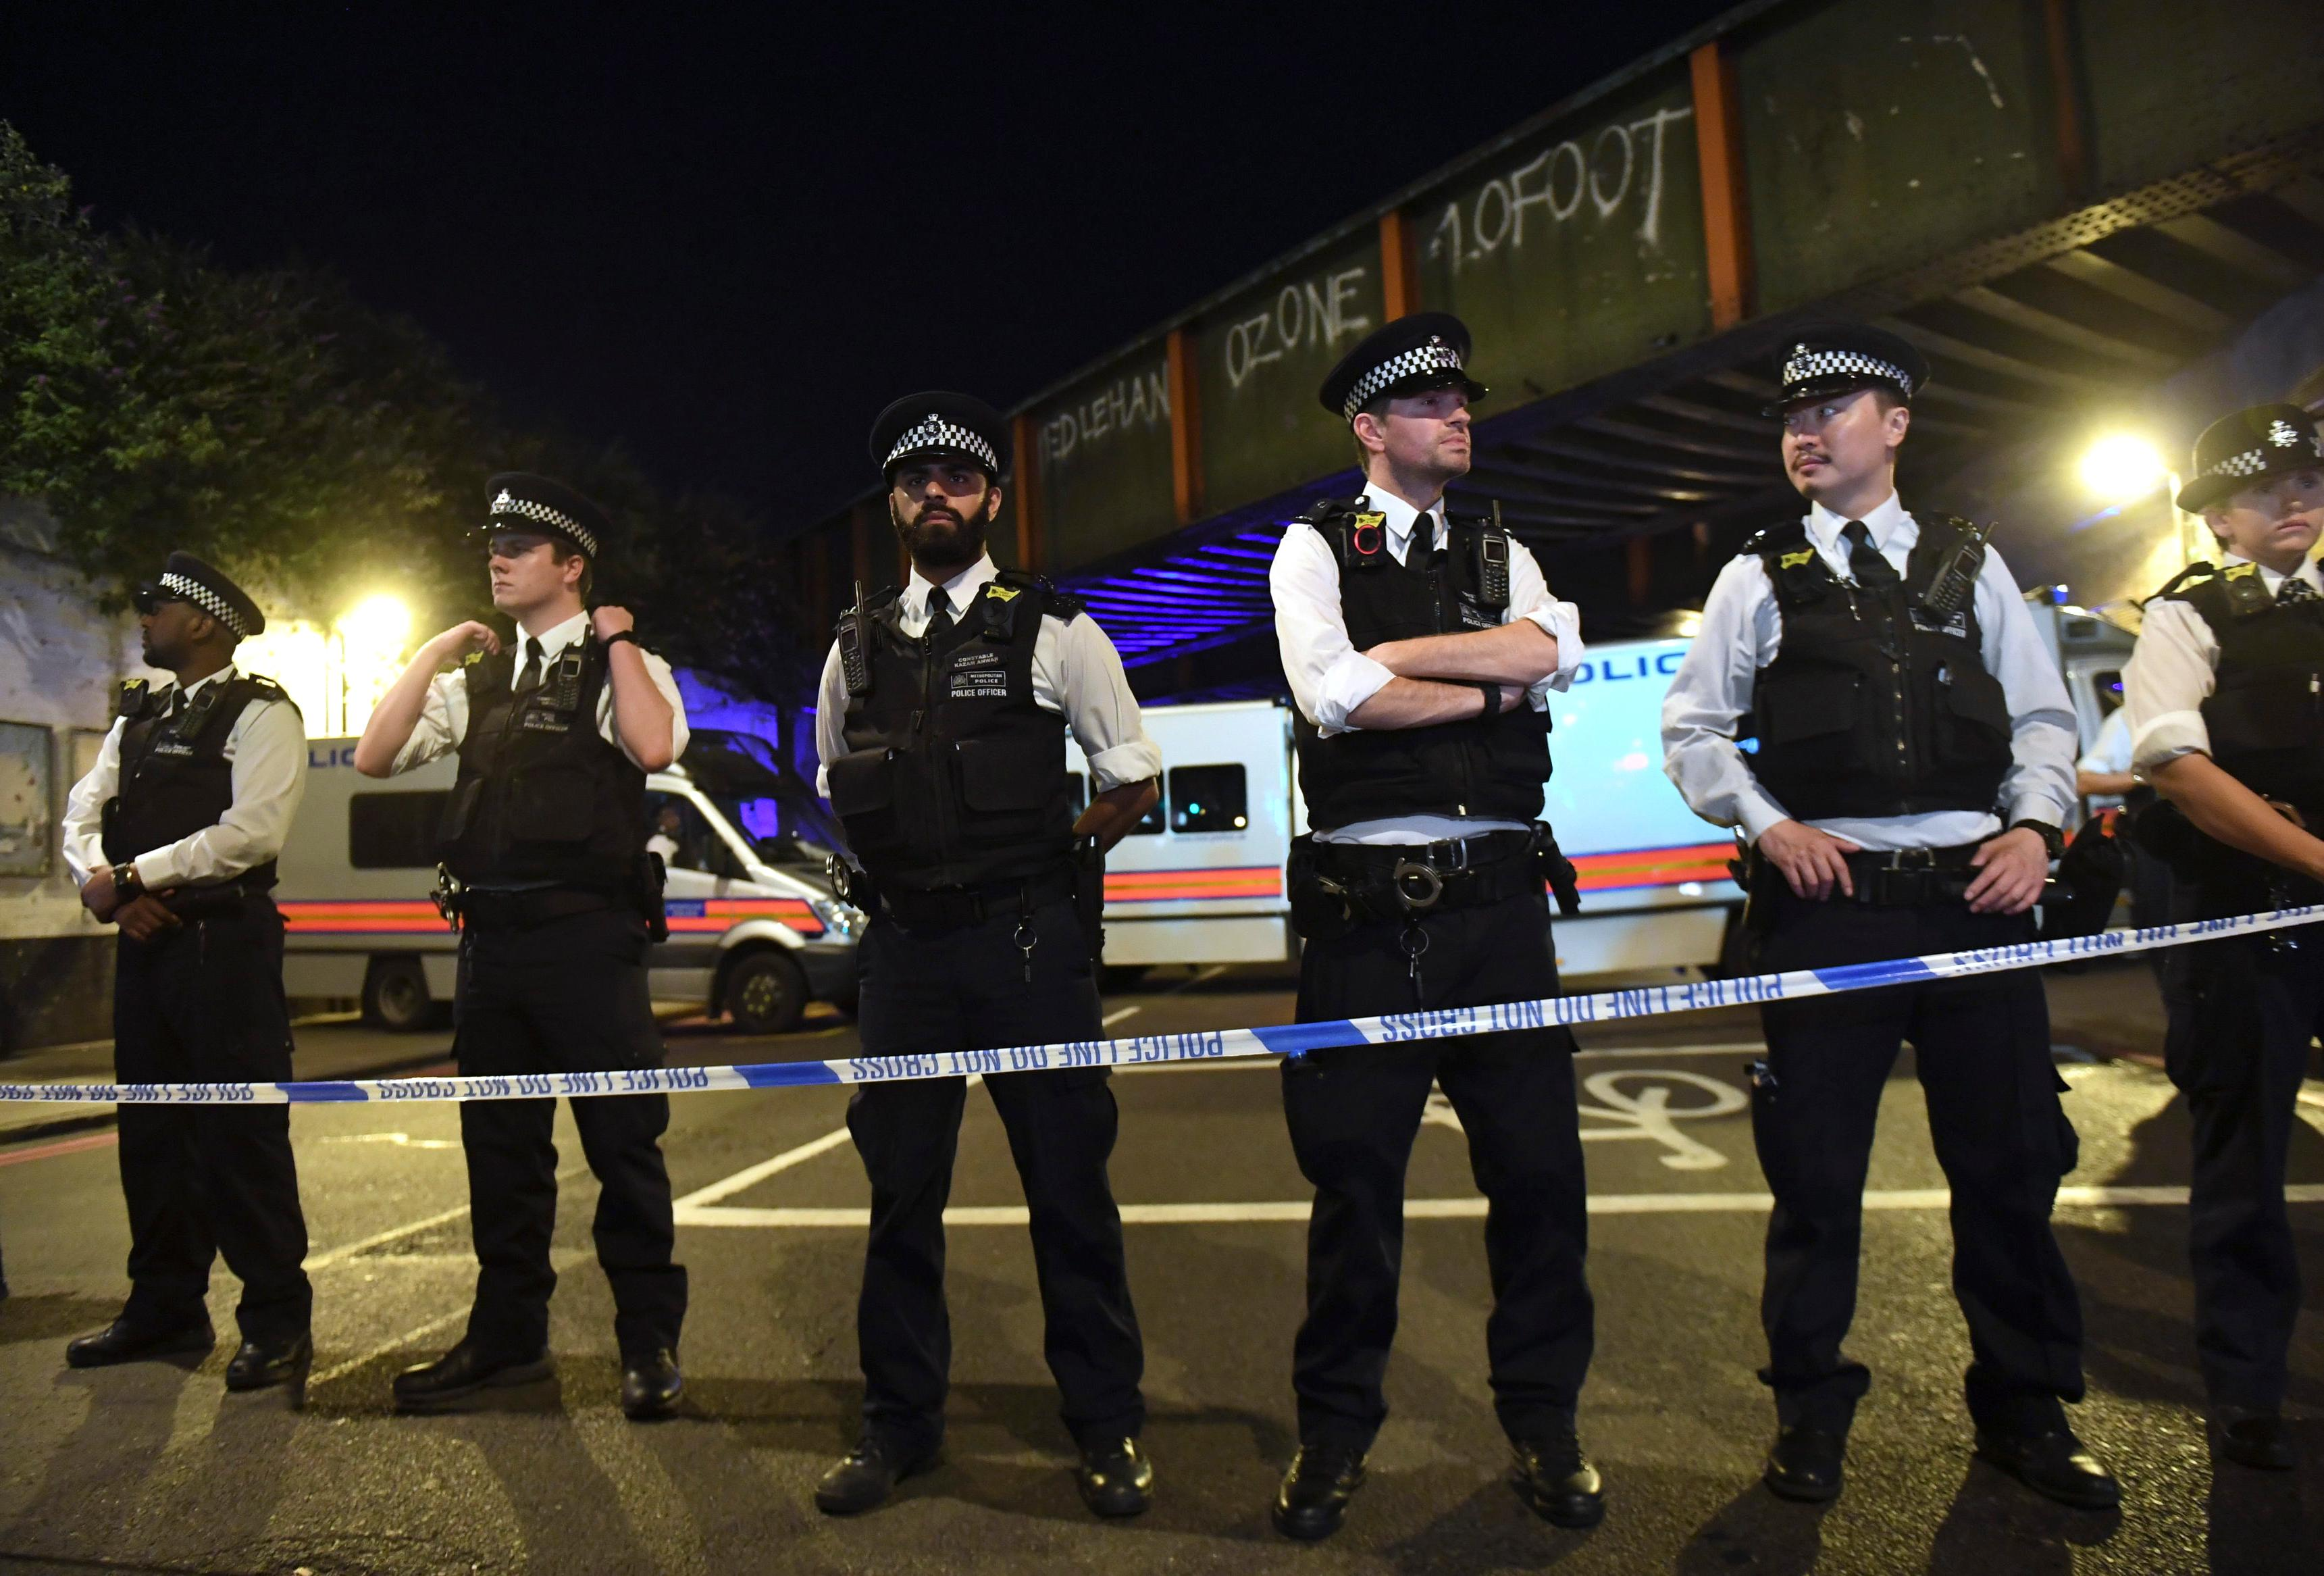 Police officers man a cordon near the Seven Sisters Road at Finsbury Park where a vehicle struck pedestrians in London Monday, June 19, 2017. Police say a vehicle struck pedestrians on a road in north London, leaving several casualties and one person has been arrested. (Yui Mok/PA via AP)